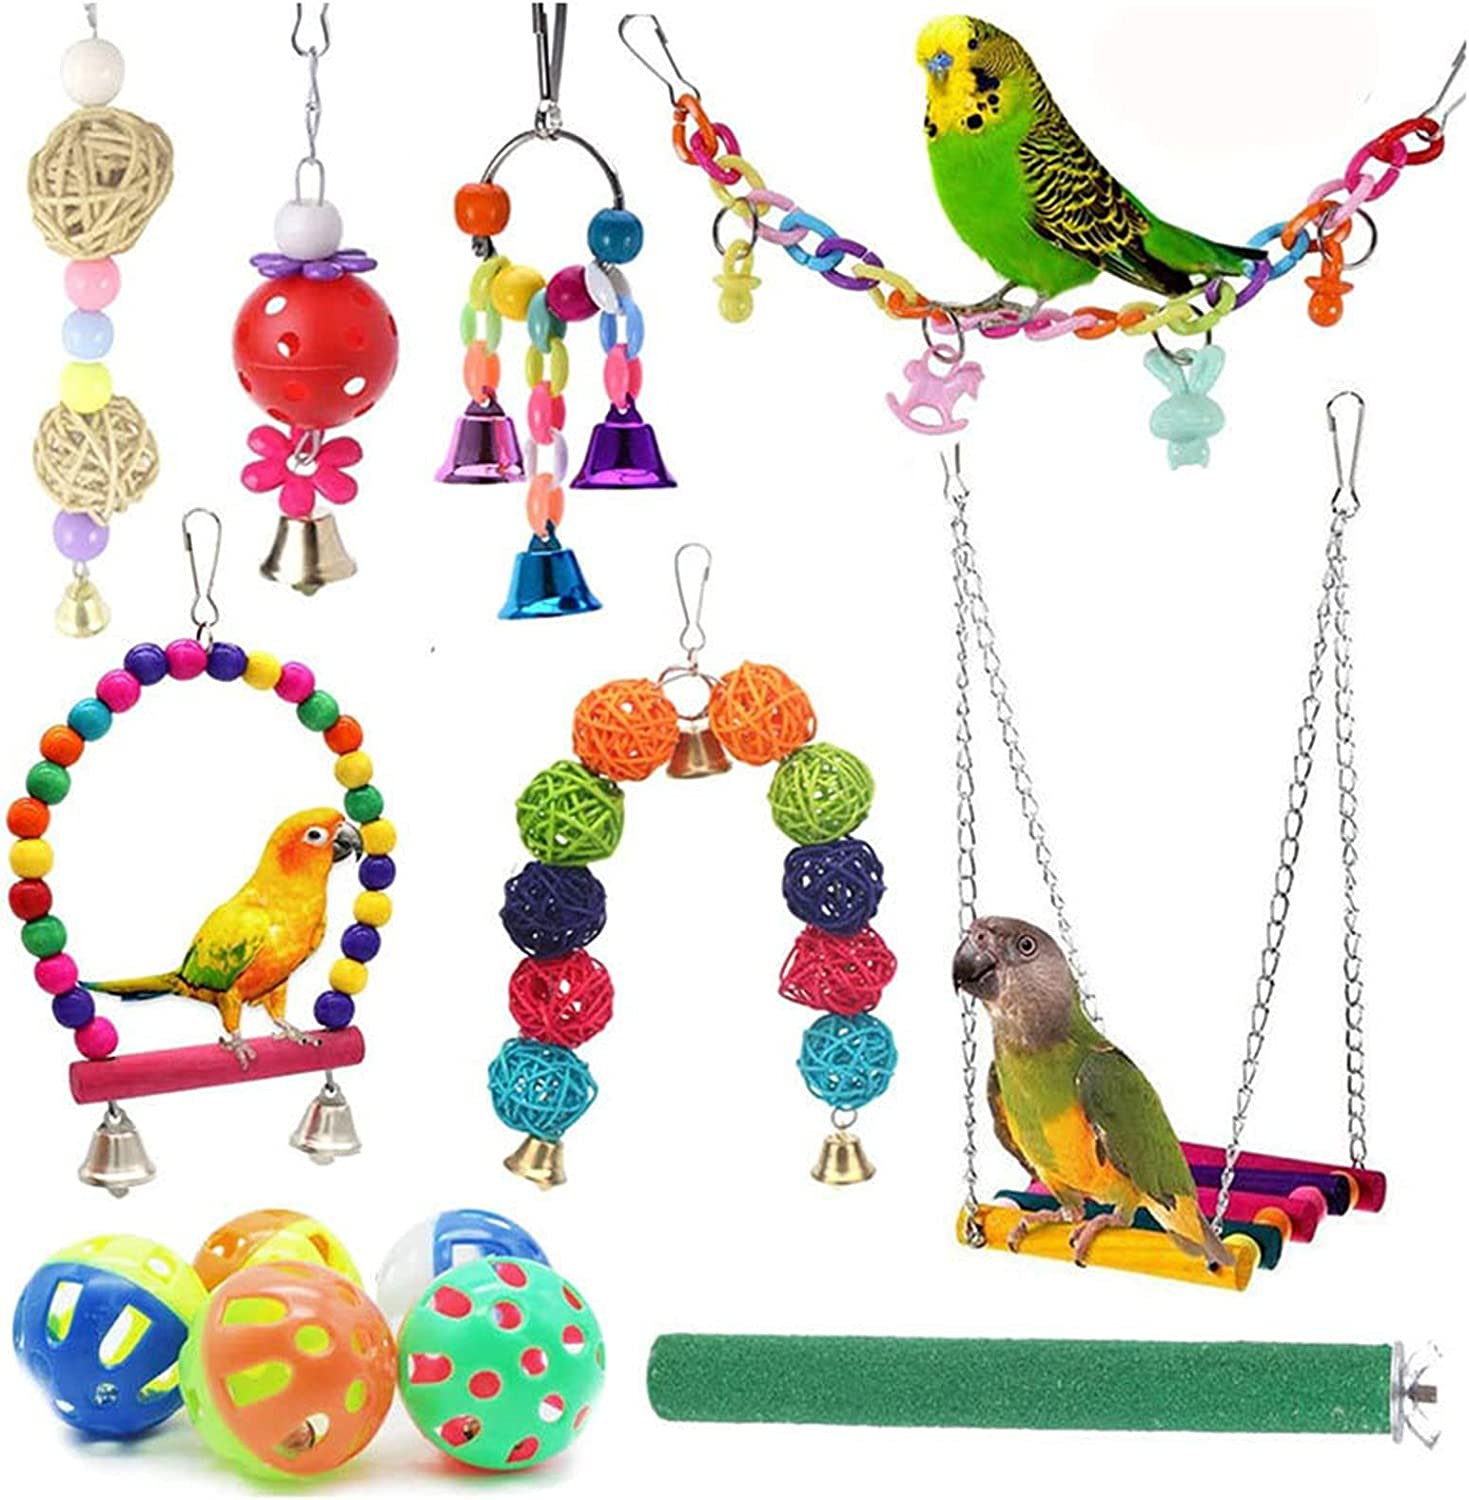 OhhGo 13pcs Bird Chewing Toys Set Hanging Multicolored Japan's largest Daily bargain sale assortment